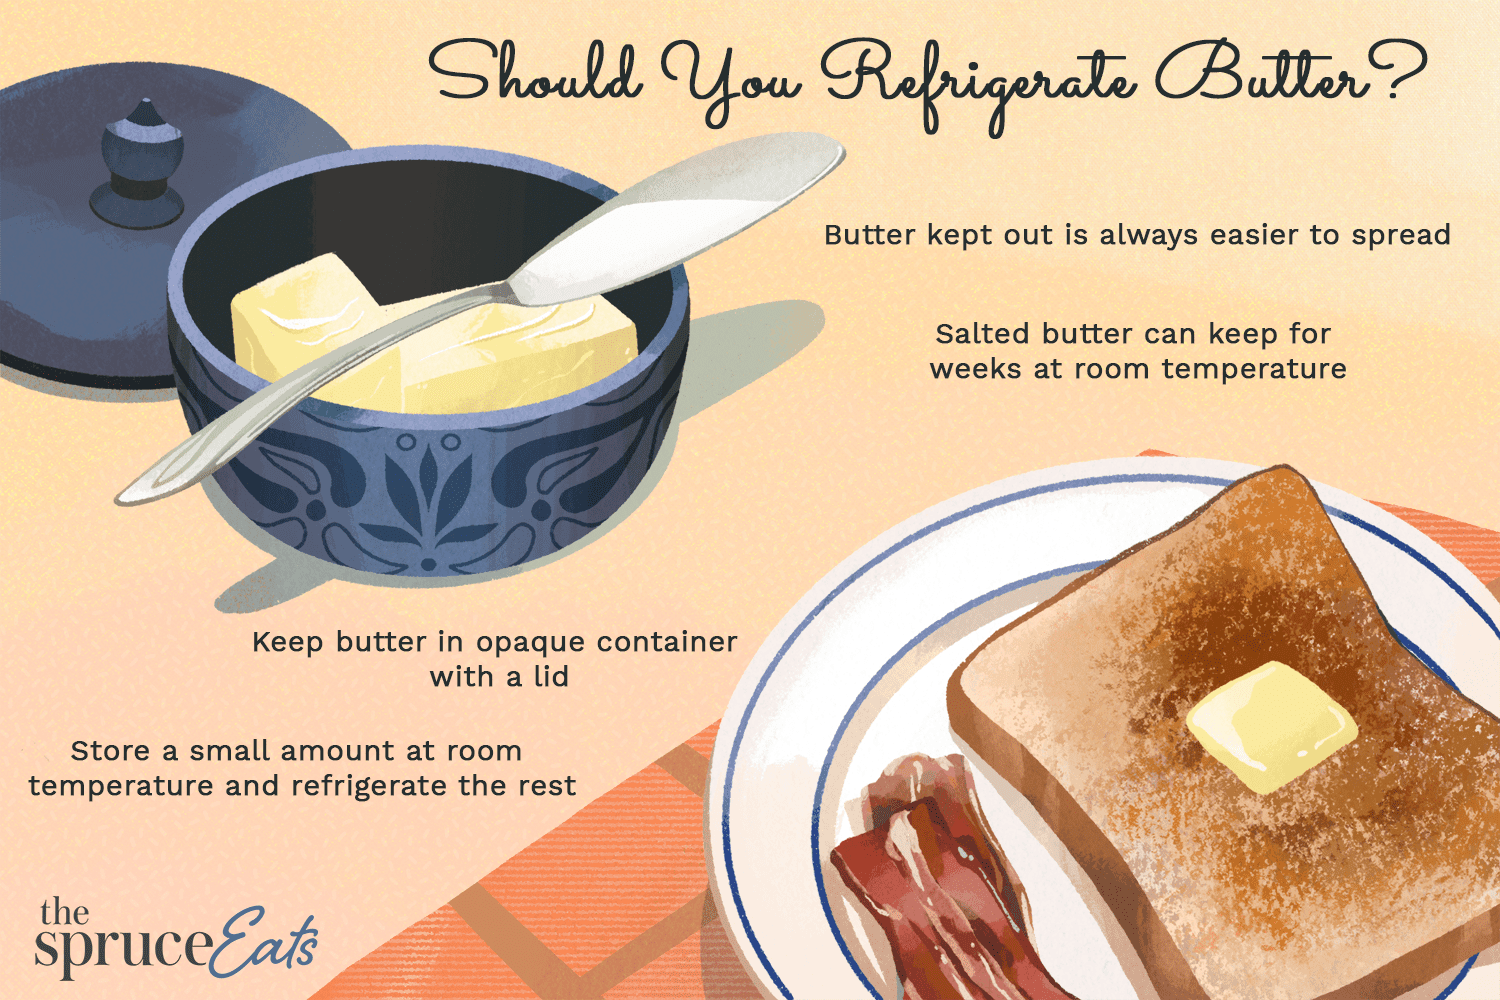 Do You REALLY Have to Refrigerate Butter?